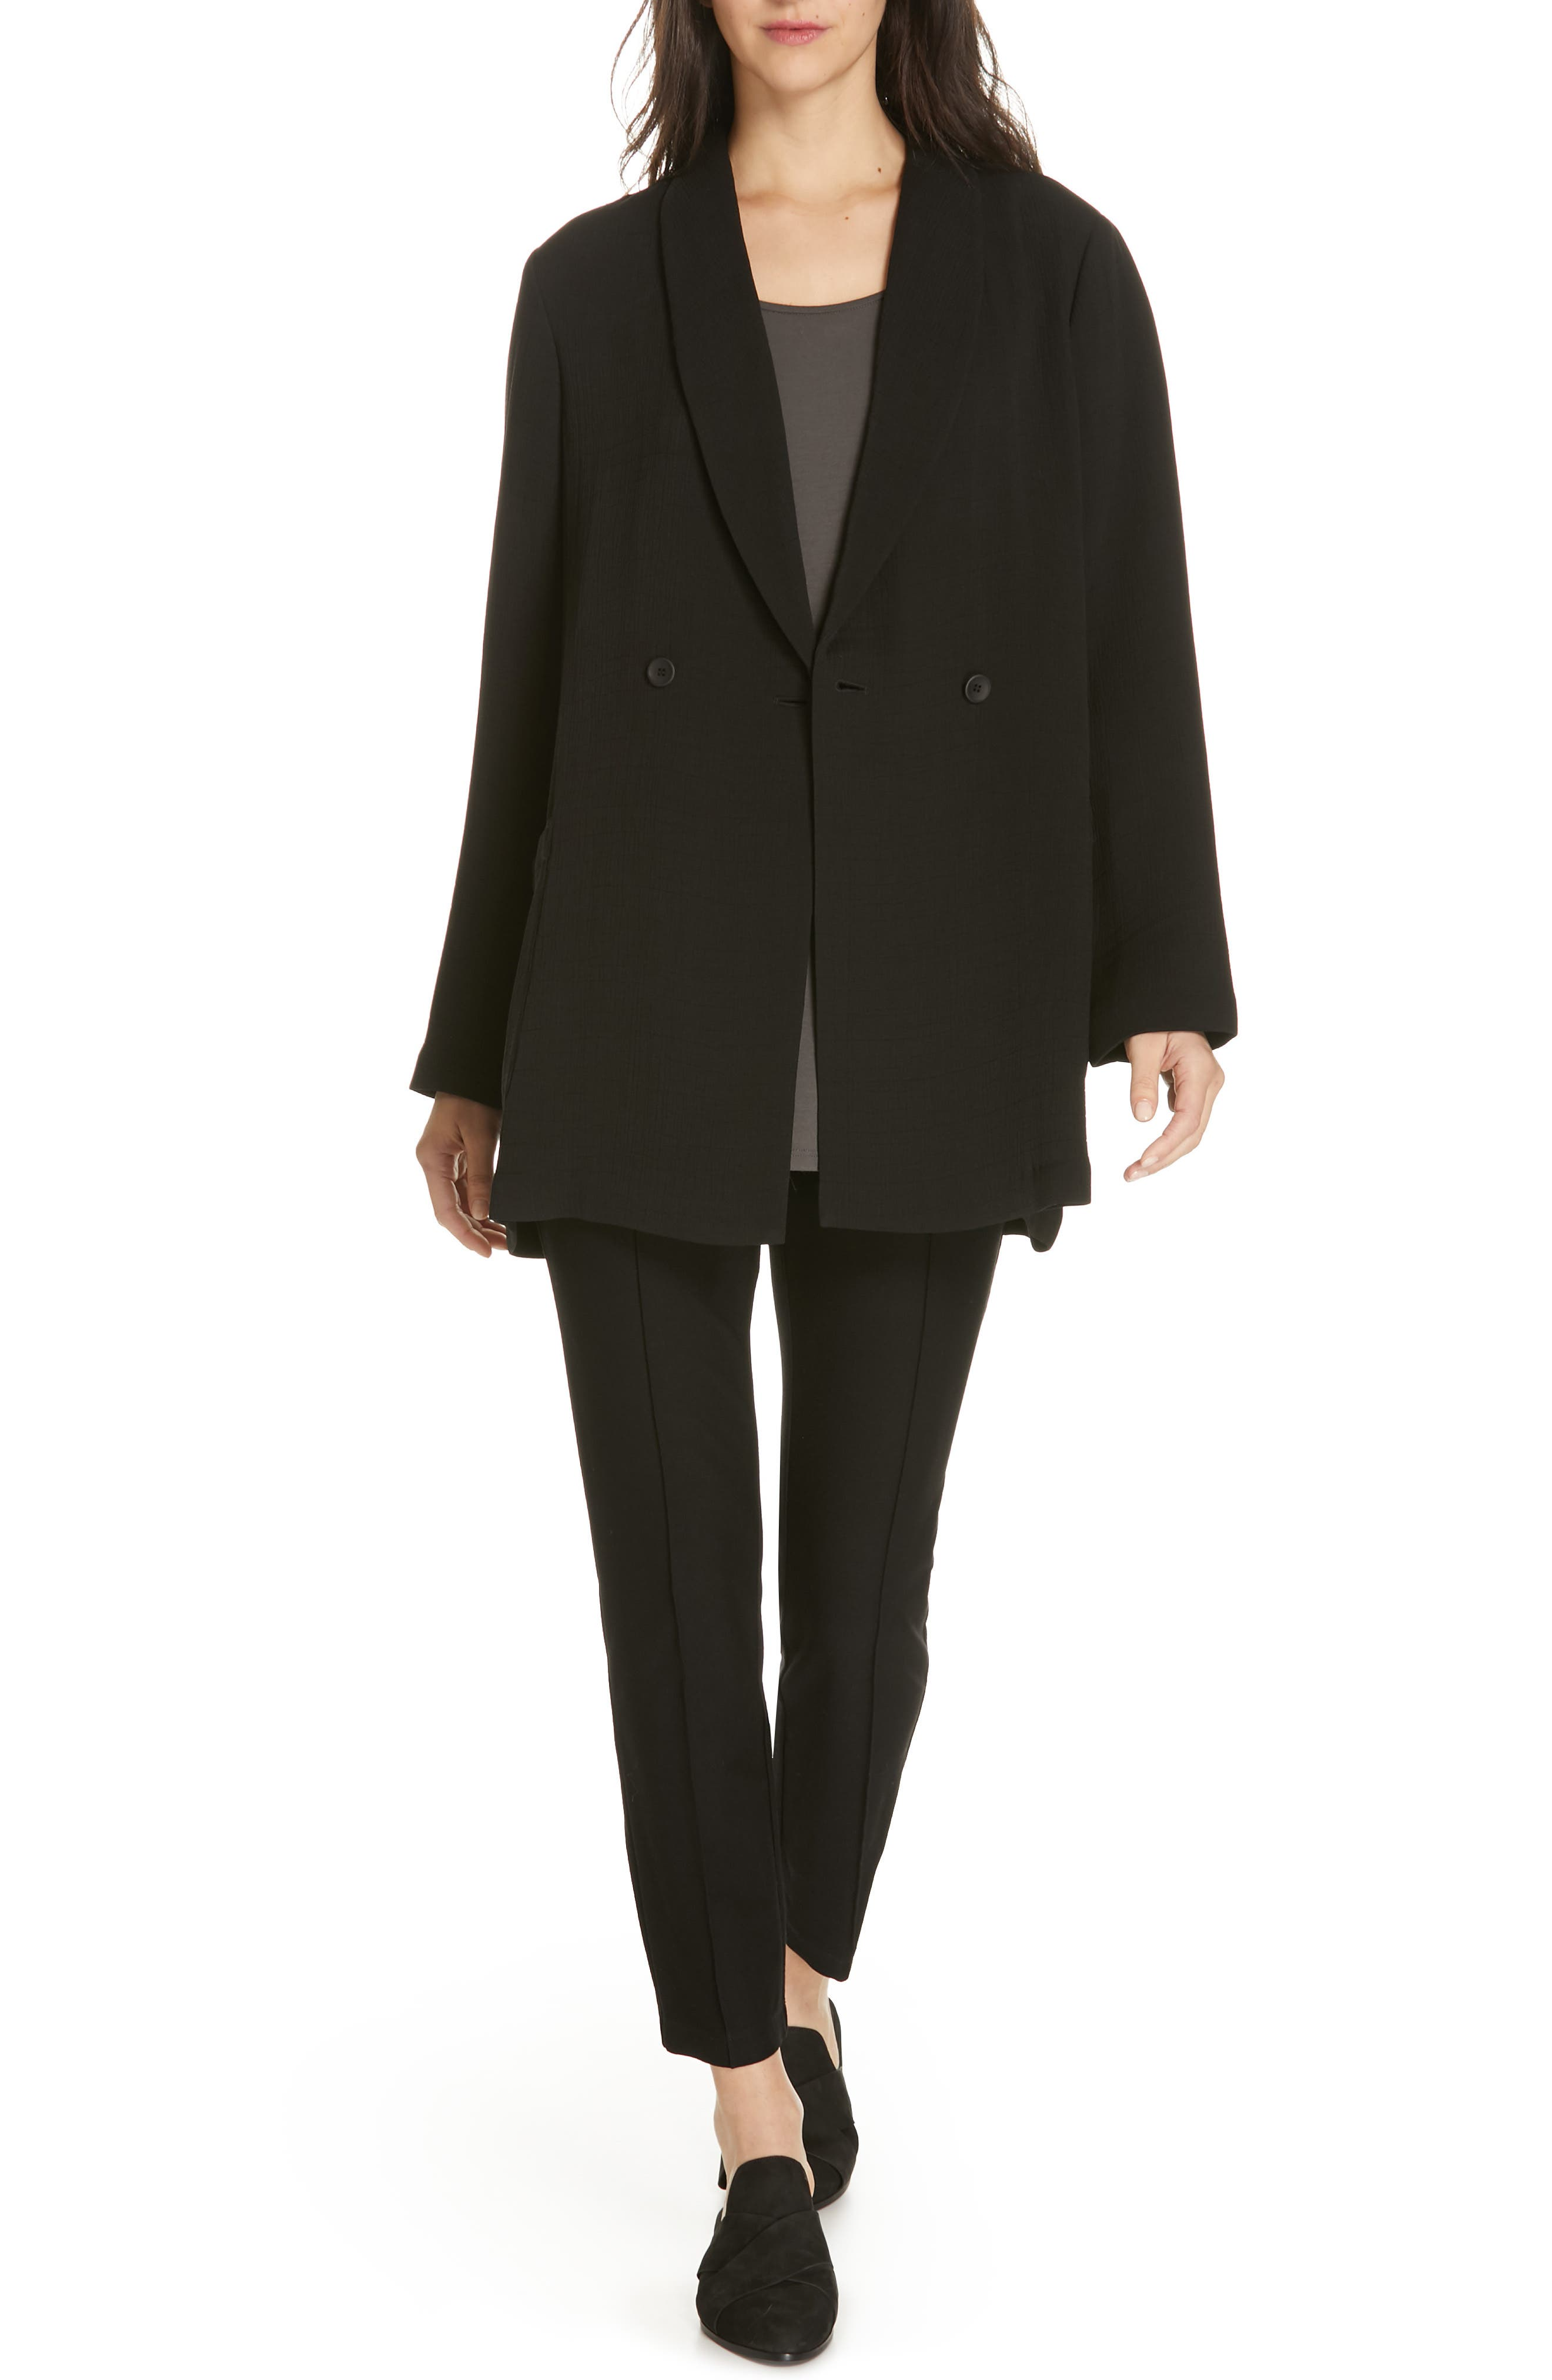 EILEEN FISHER, Double Breasted Blazer, Alternate thumbnail 7, color, BLACK